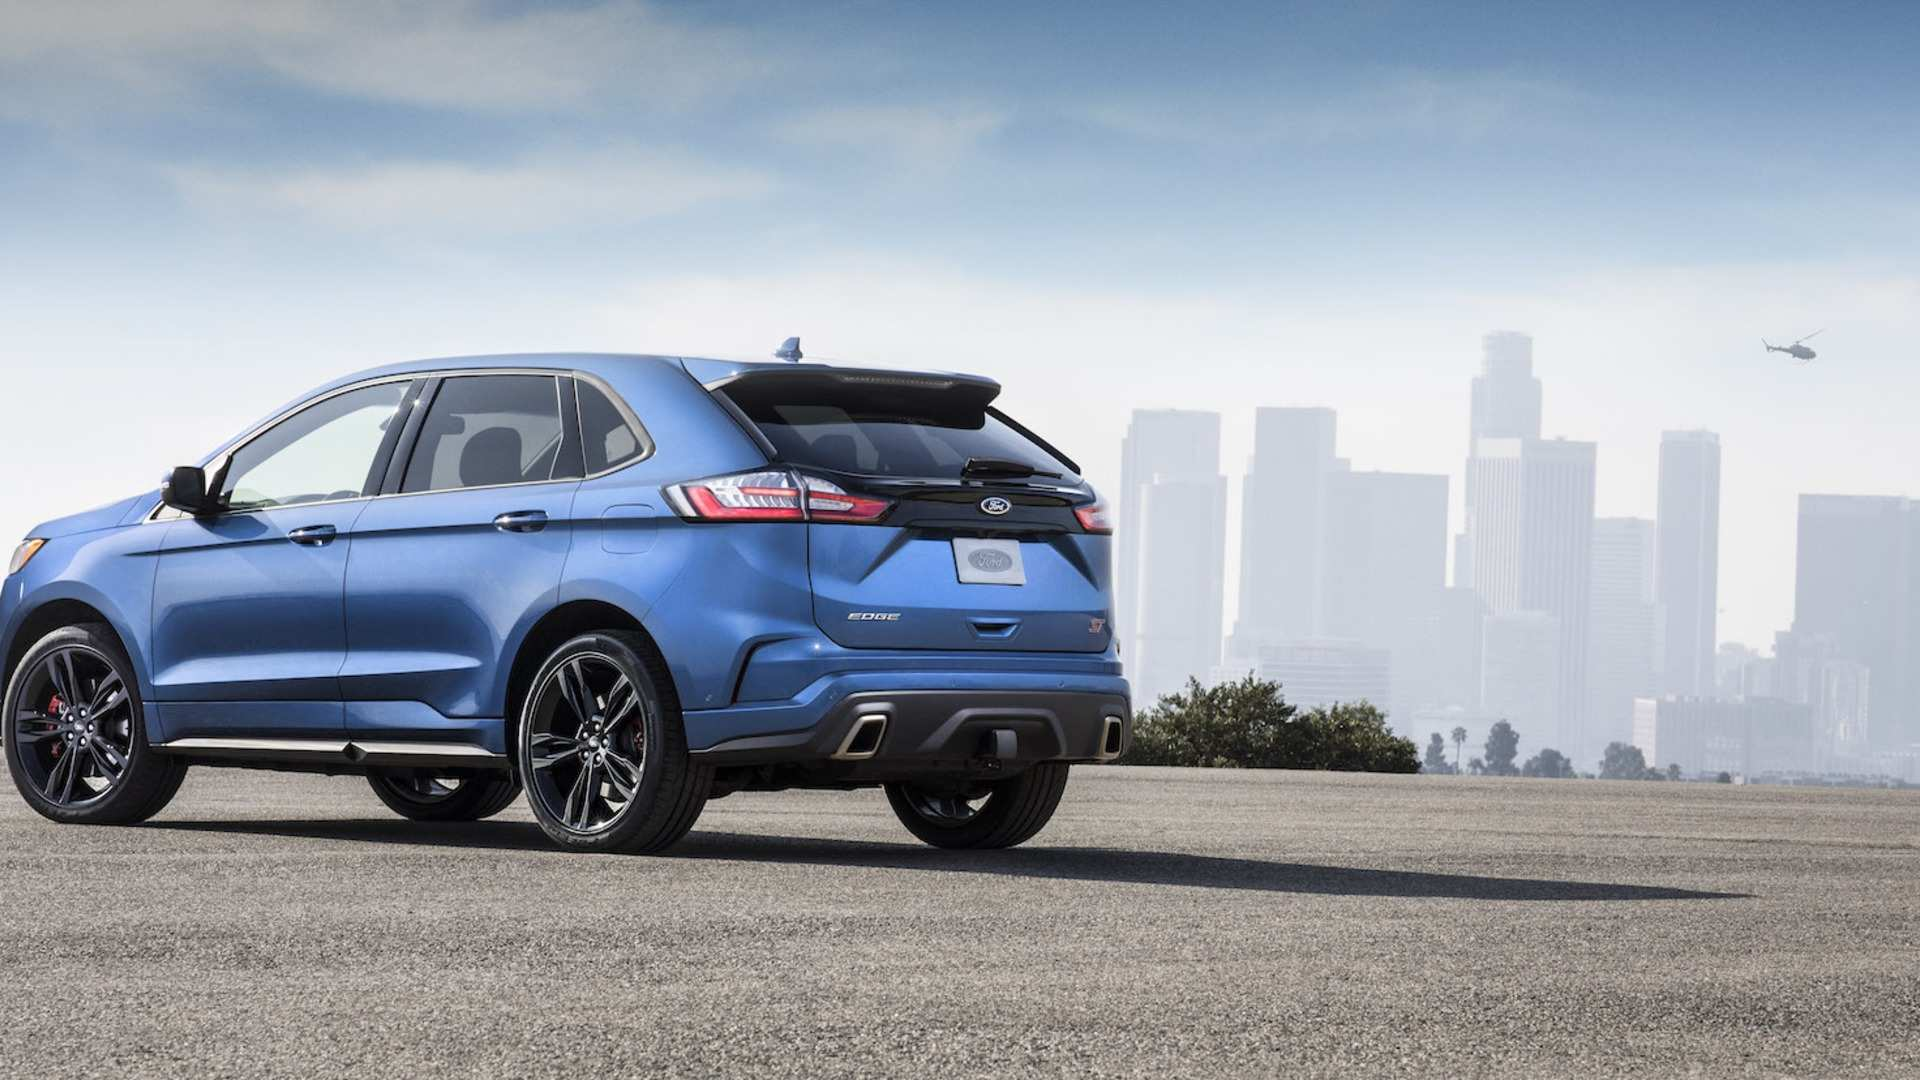 94 A 2020 Ford Edge Images